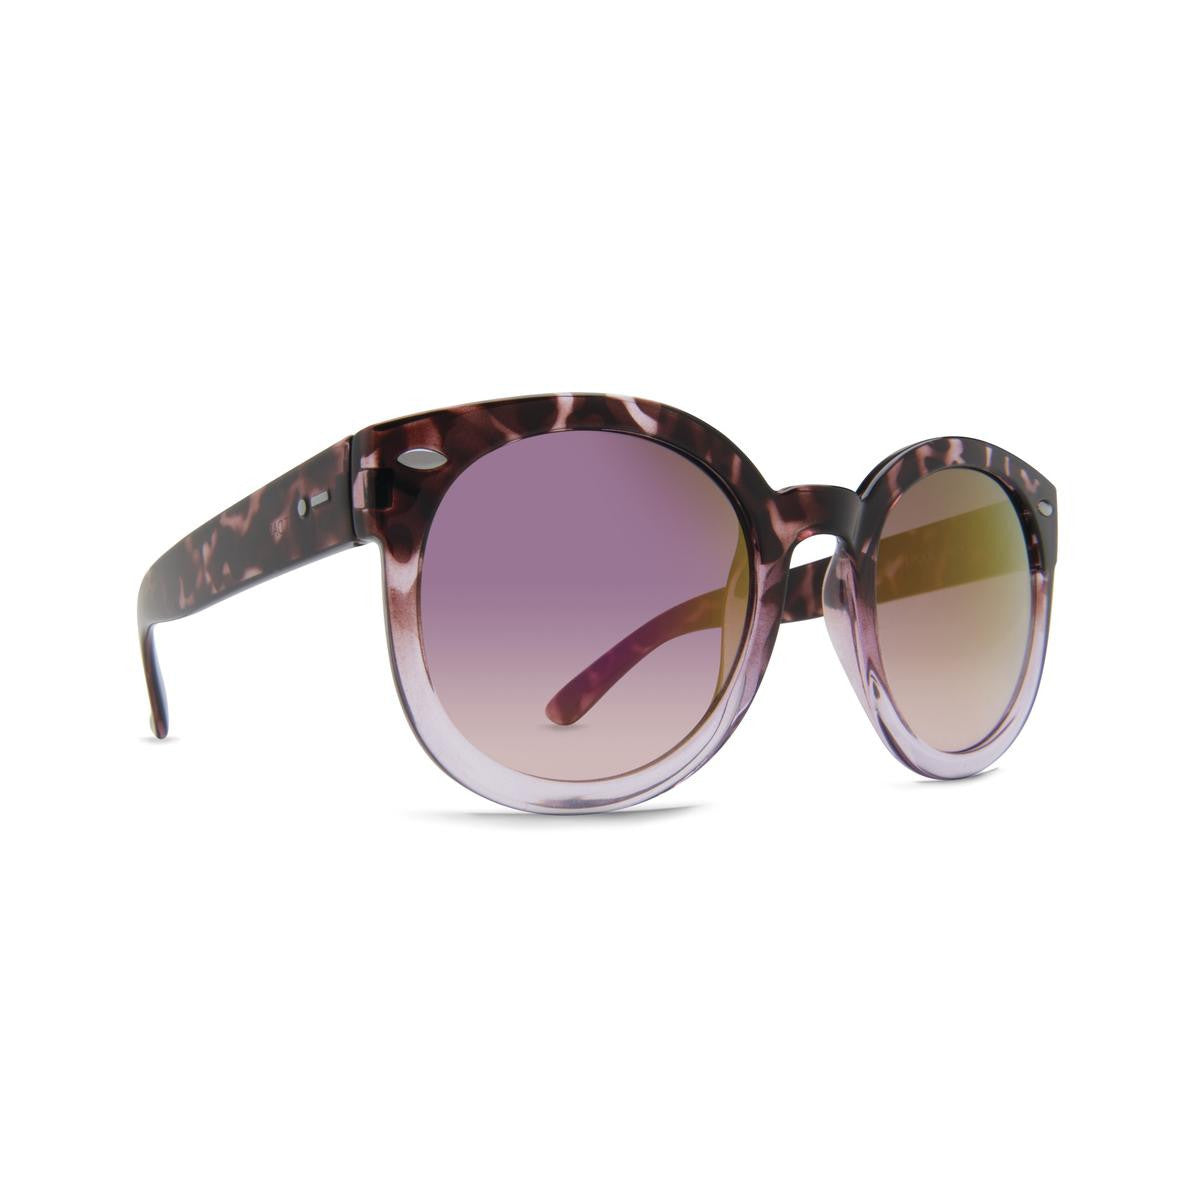 Dot Dash Pool Party Women's Sunglasses